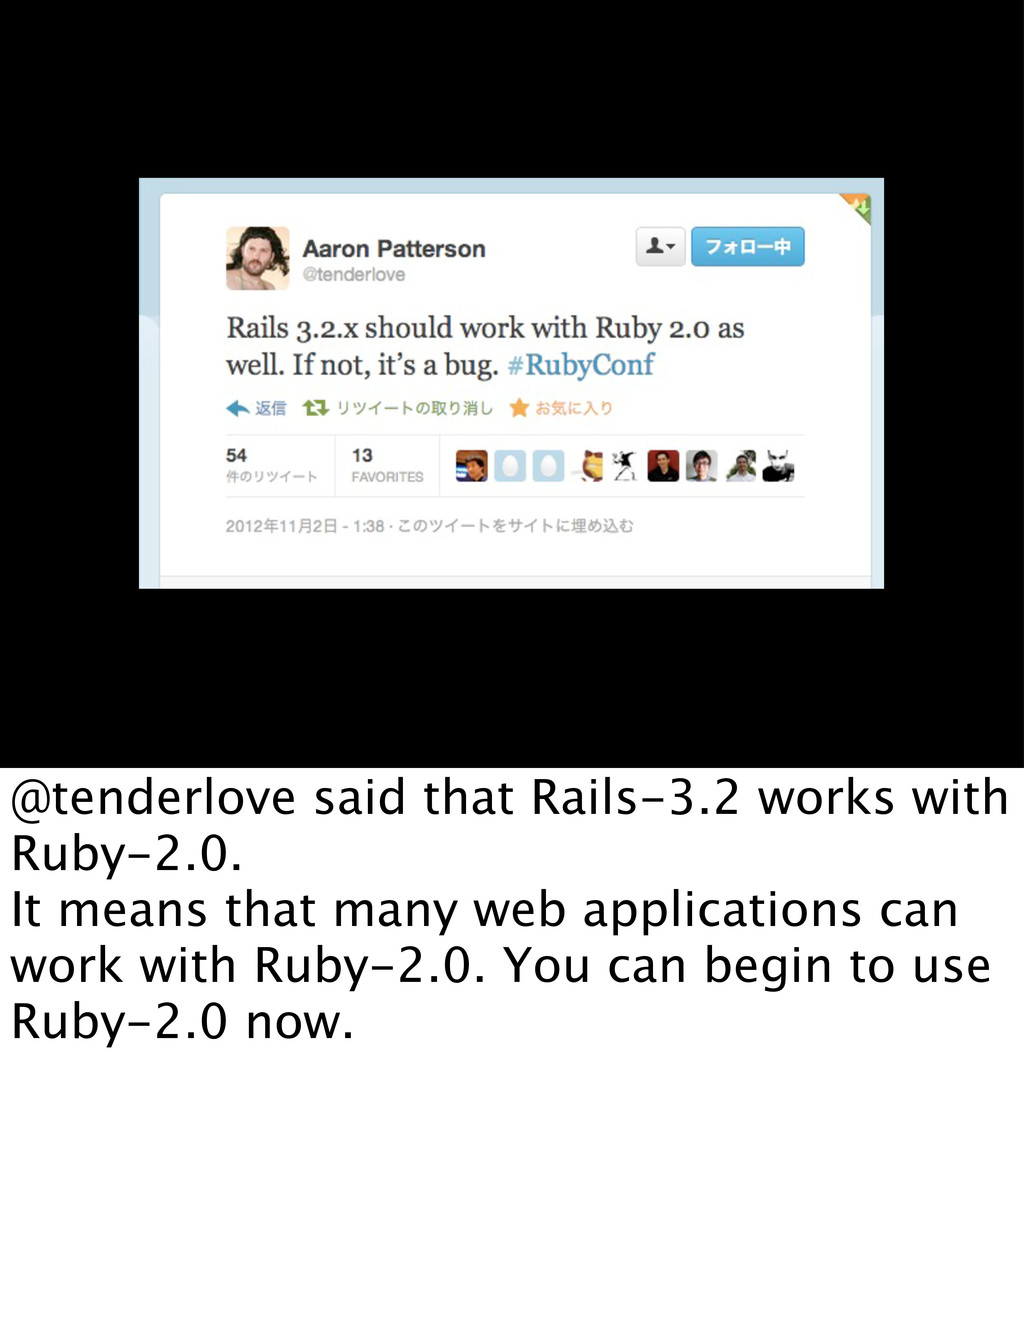 @tenderlove said that Rails-3.2 works with Ruby...